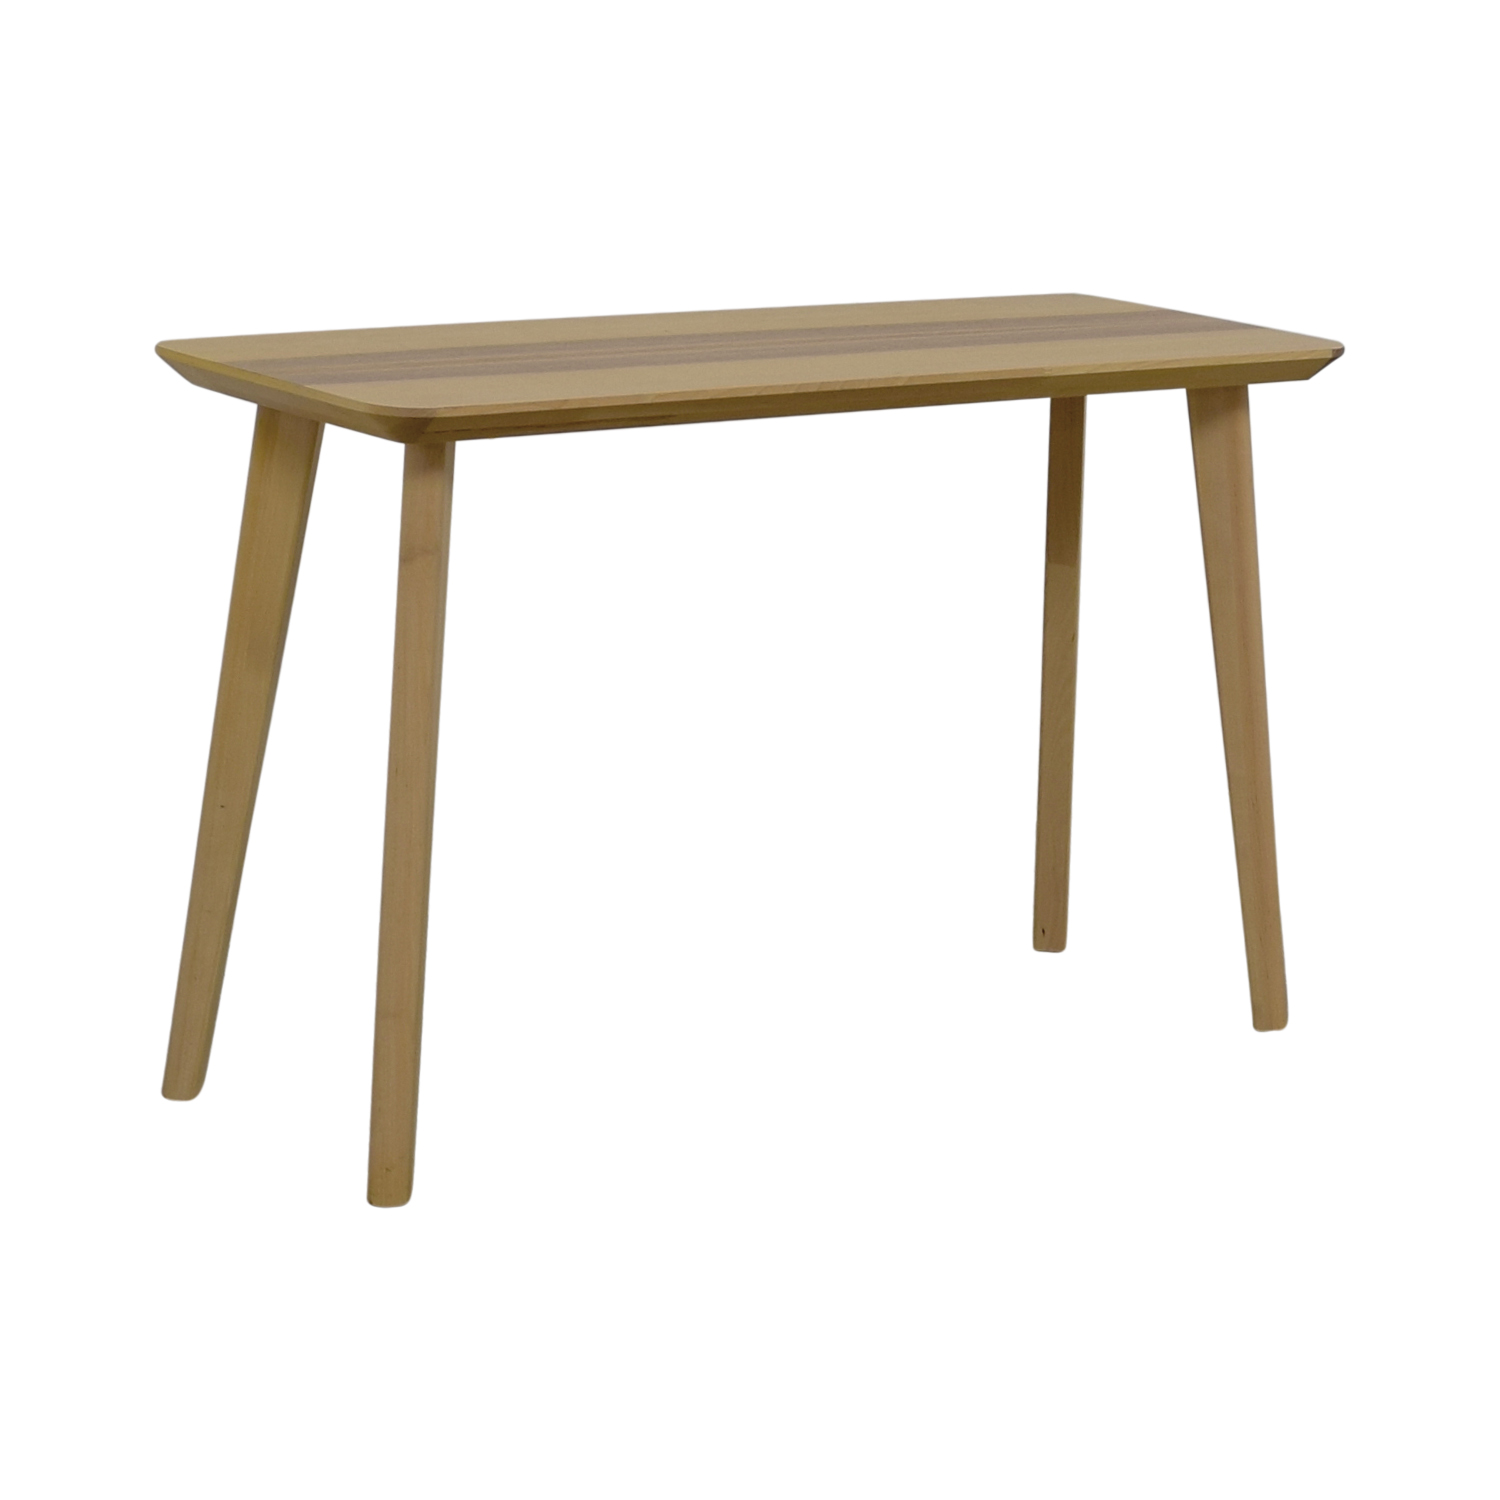 Groovy 75 Off Ikea Ikea Lisabo Natural Desk Tables Download Free Architecture Designs Scobabritishbridgeorg